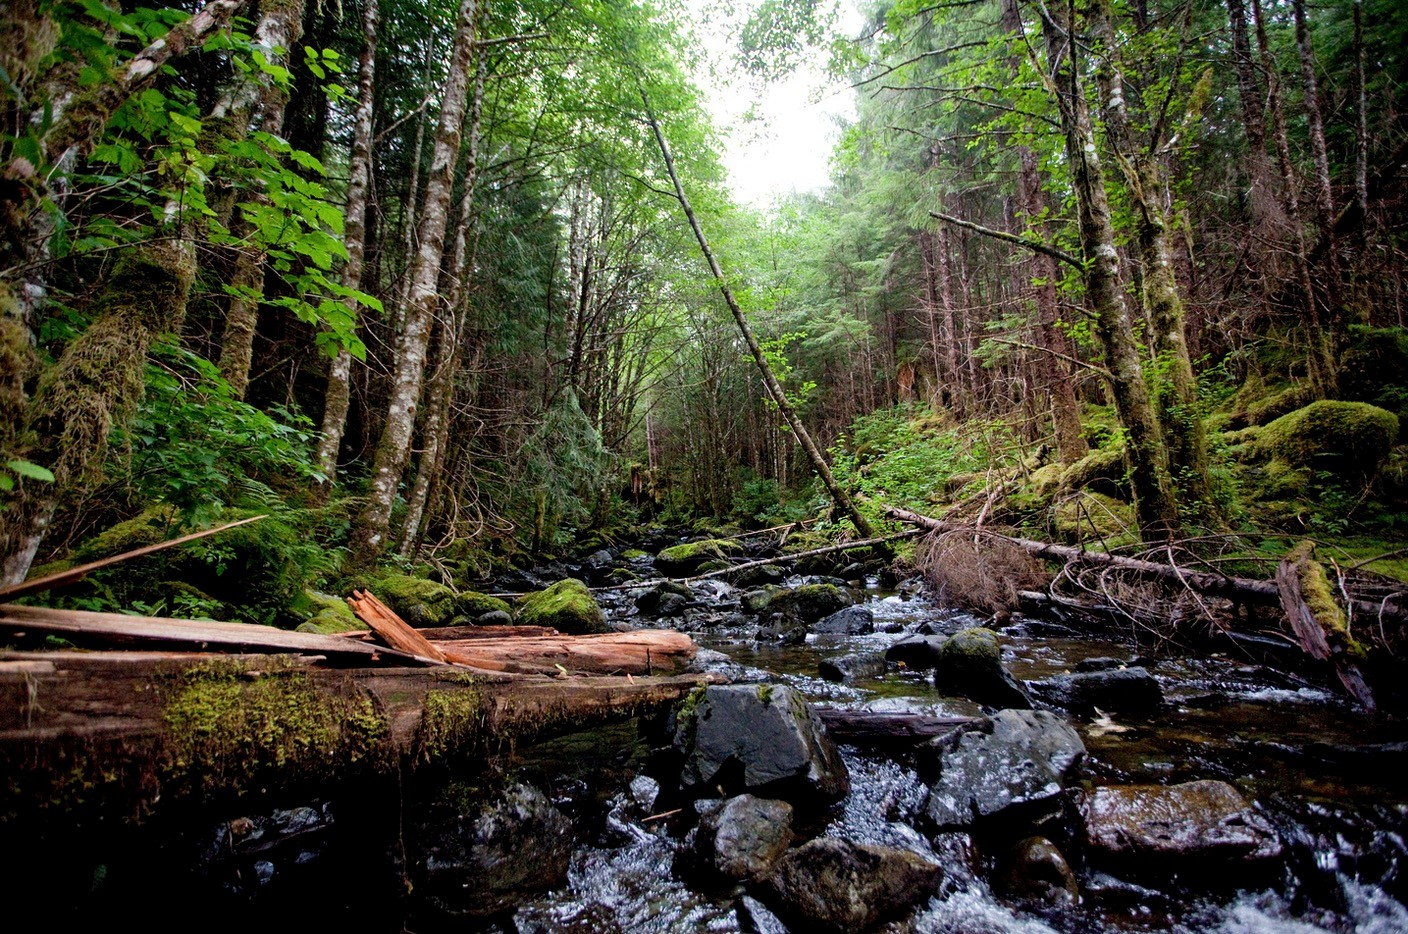 <p>Tongass National Forest, home to Sitka spruce. Photo credit: RA Beattie/Musicians for Forests</p>